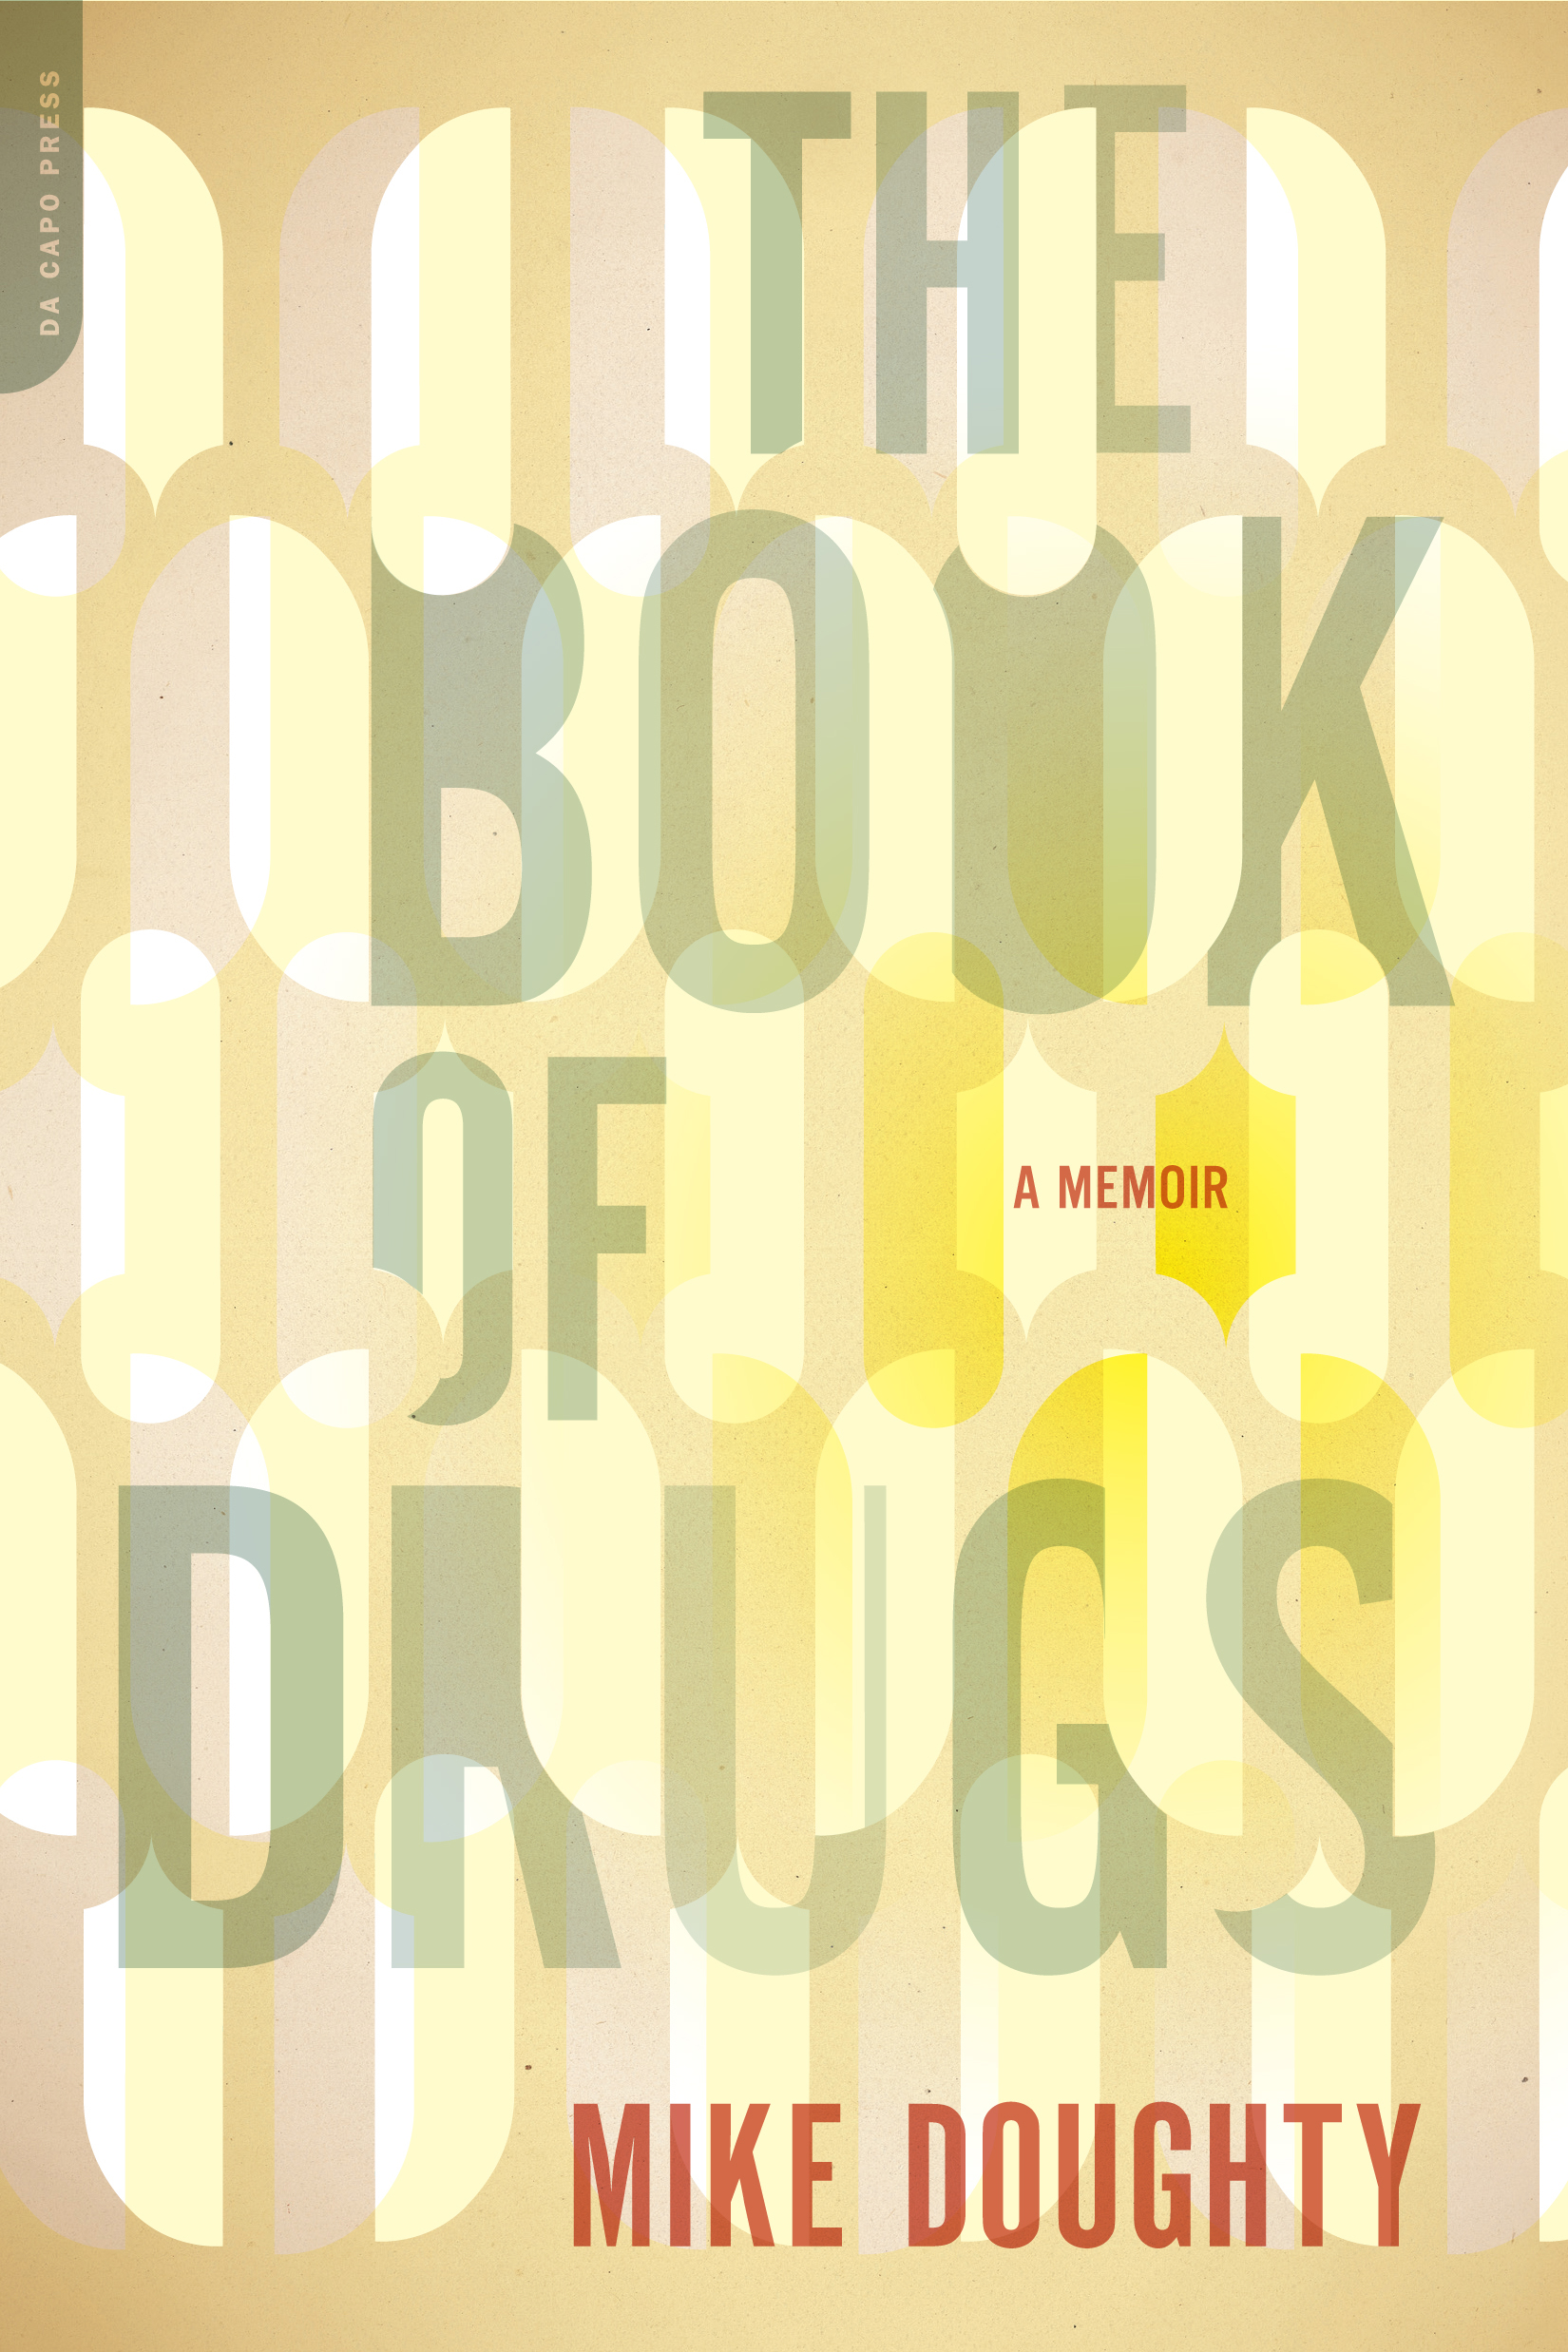 The Book of Drugs by Mike Doughty, singer, songwriter and former front man for Soul Coughing